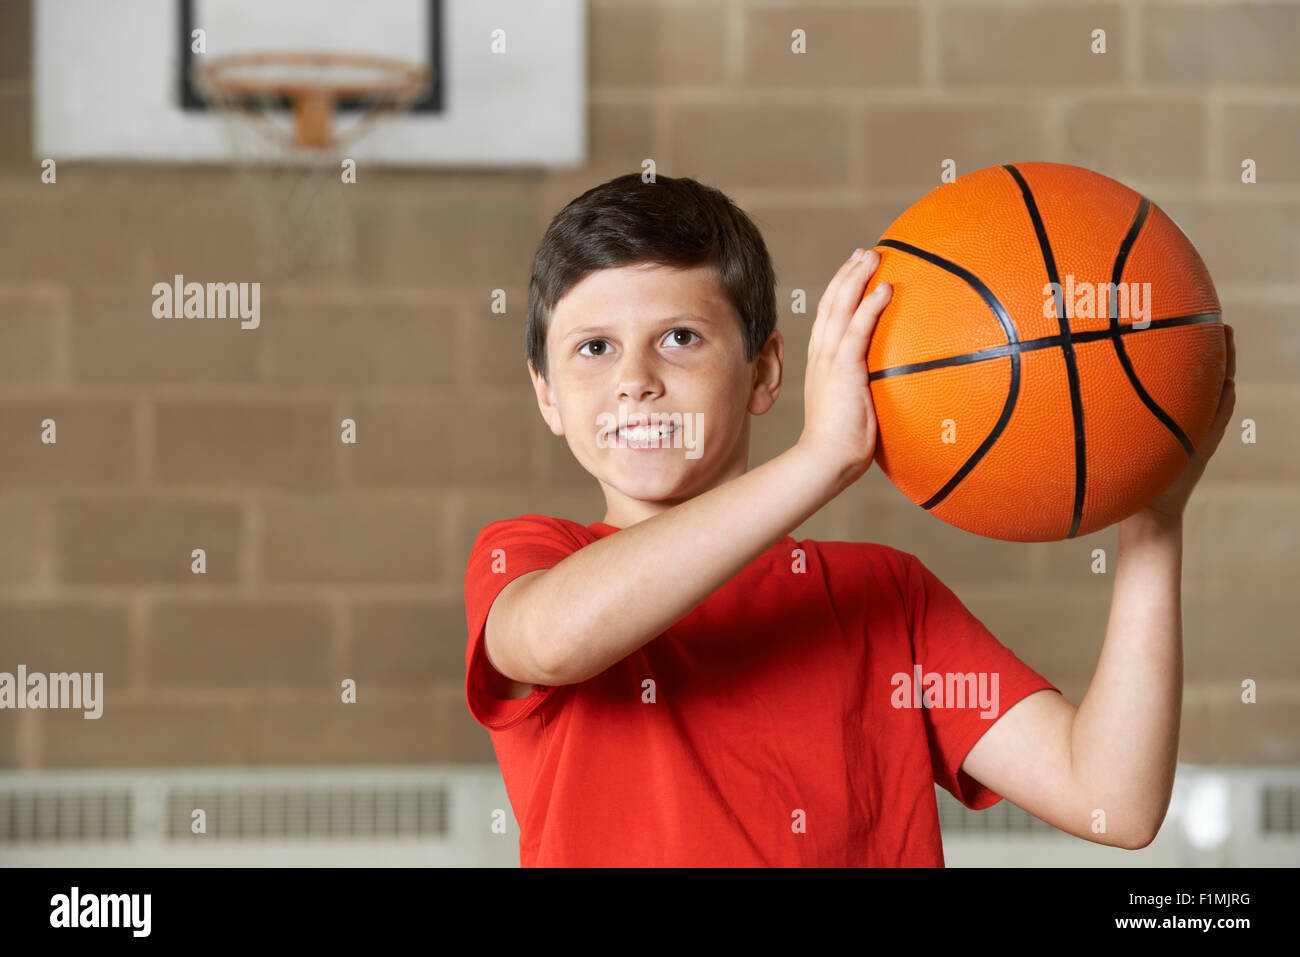 Boy Shooting During Basketball Match In School Gym - Stock Image